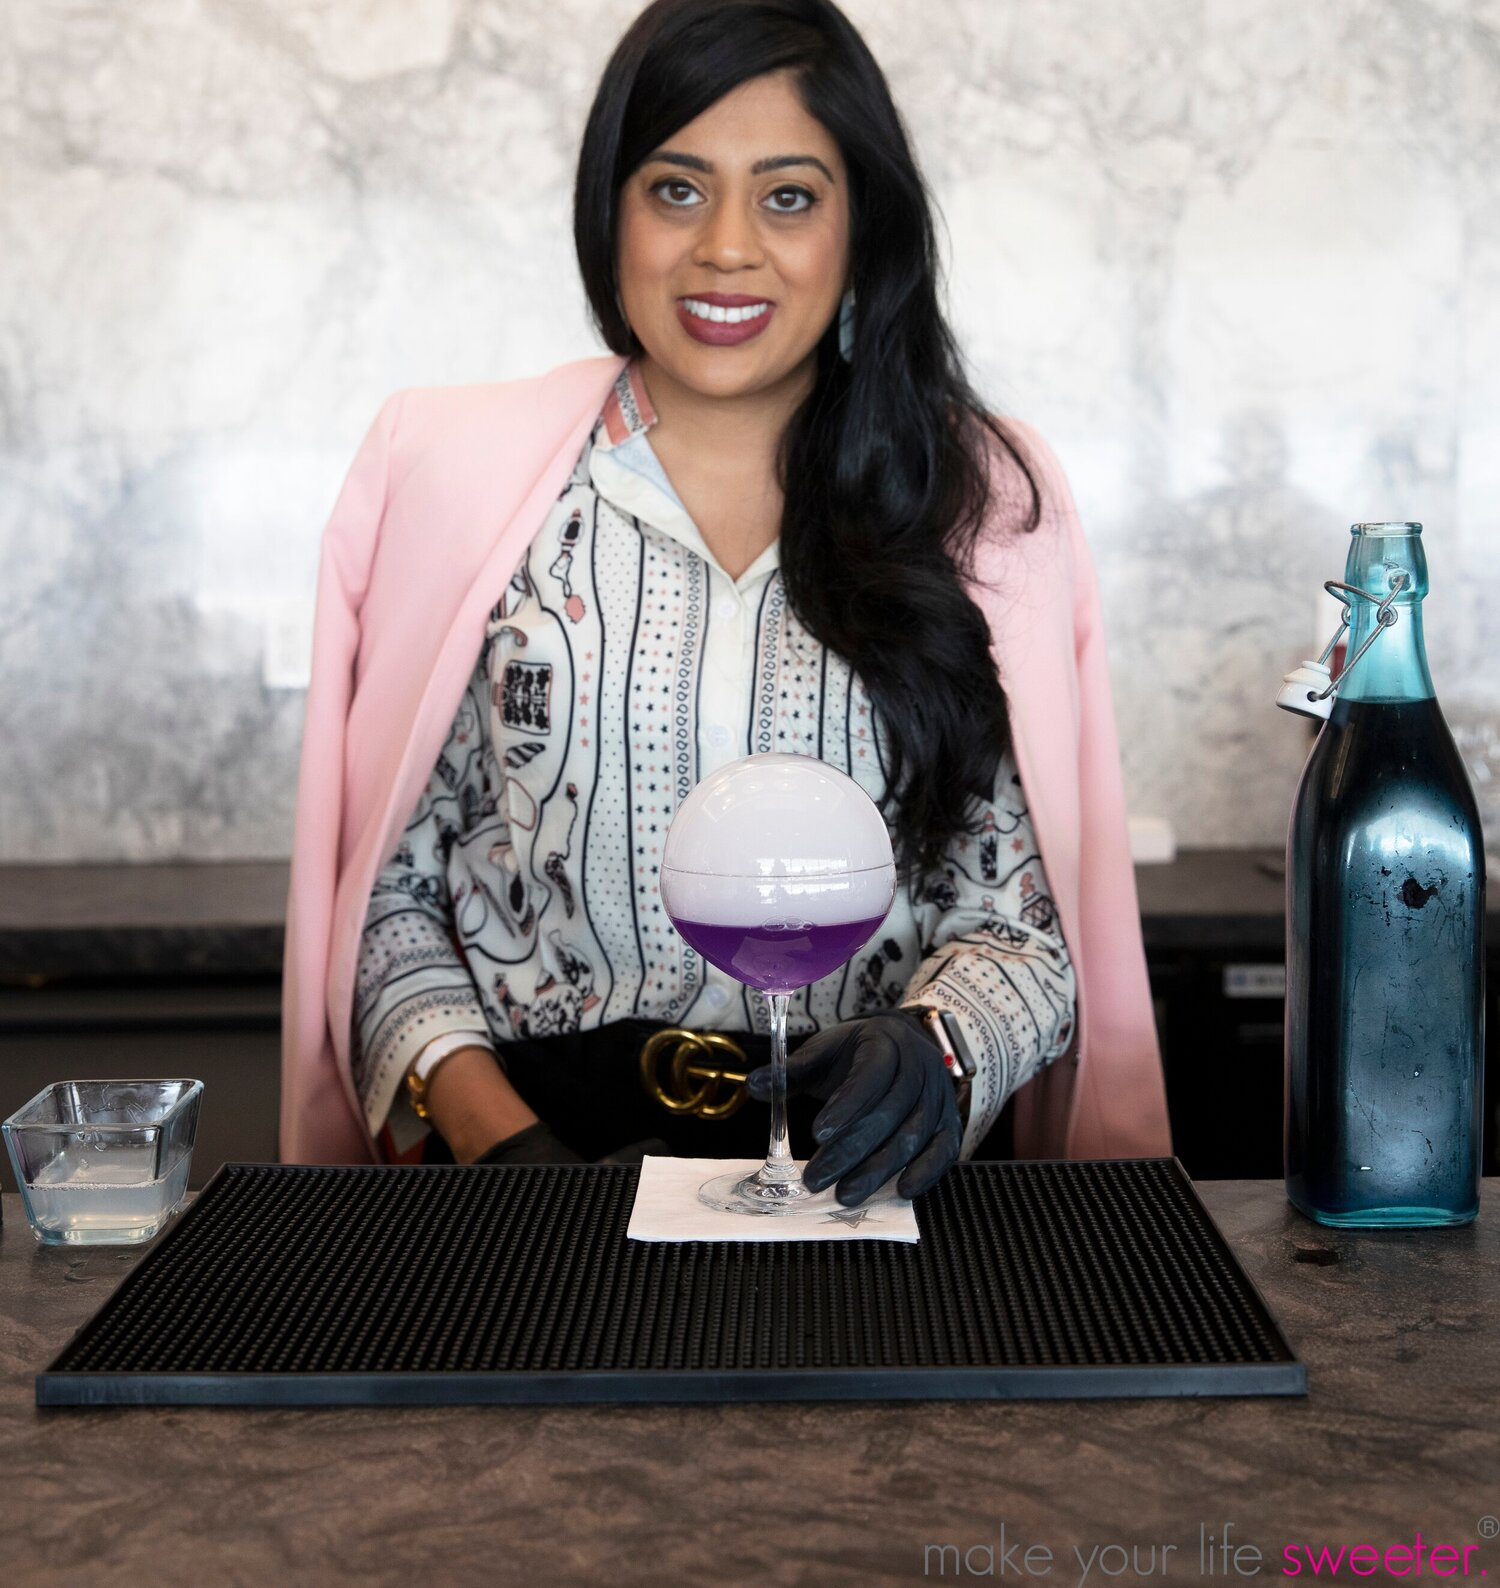 Yasmeen with her newest creation the Zphere- flavored edible vapor bubble